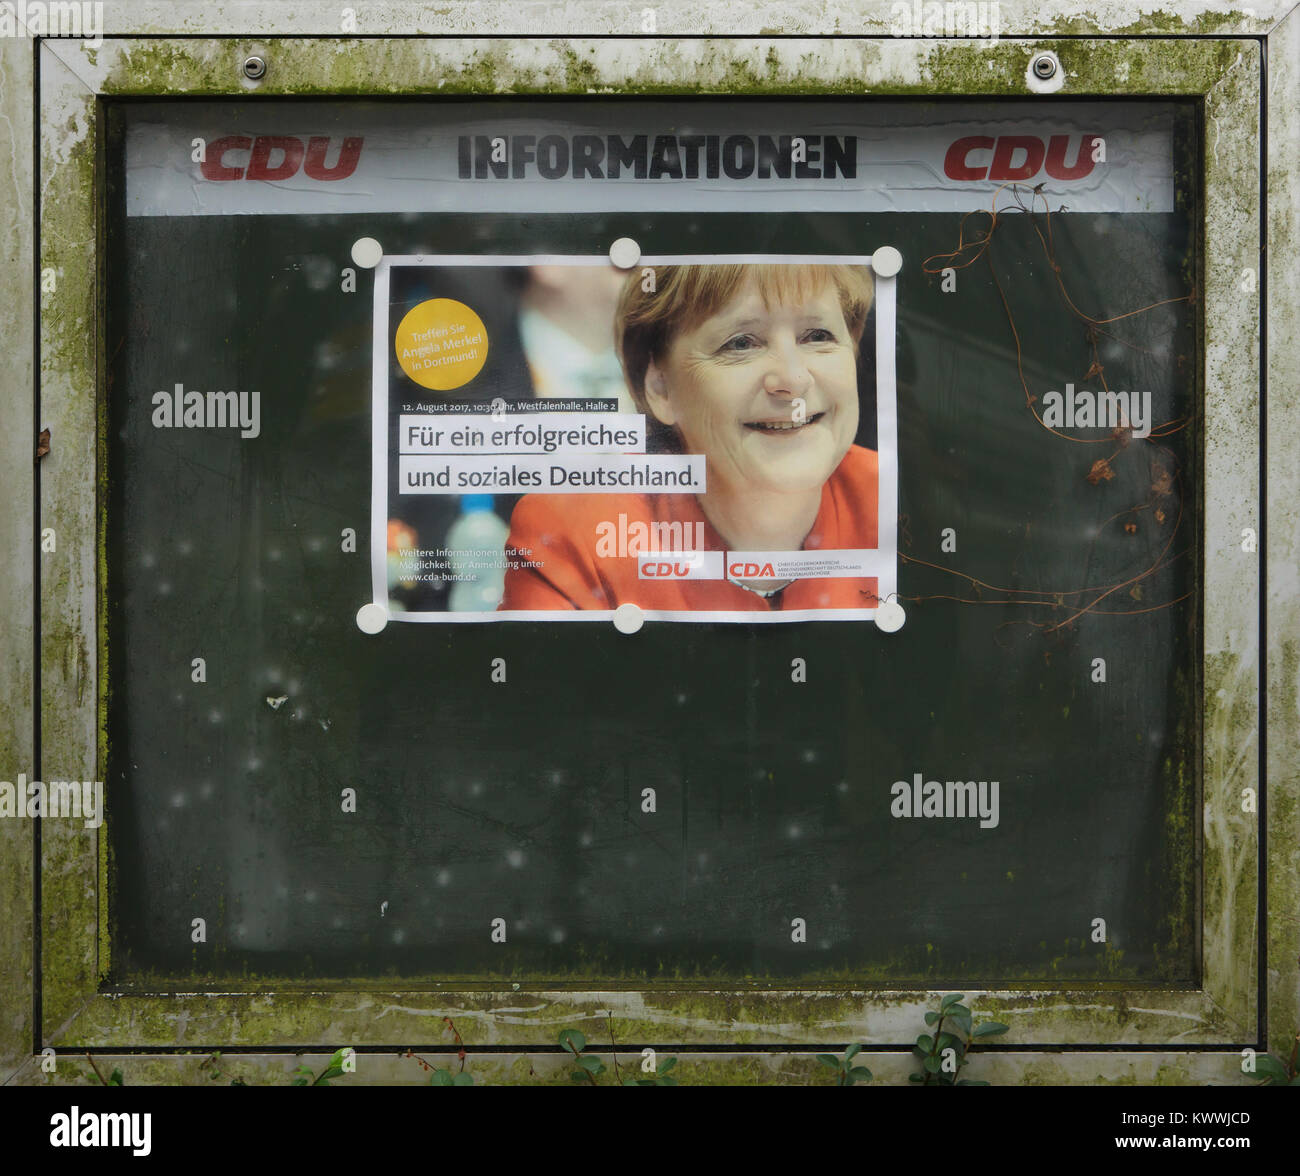 Angela Merkel, the Chancellor of Germany and the leader of the Christian Democratic Union (CDU), depicted in the - Stock Image